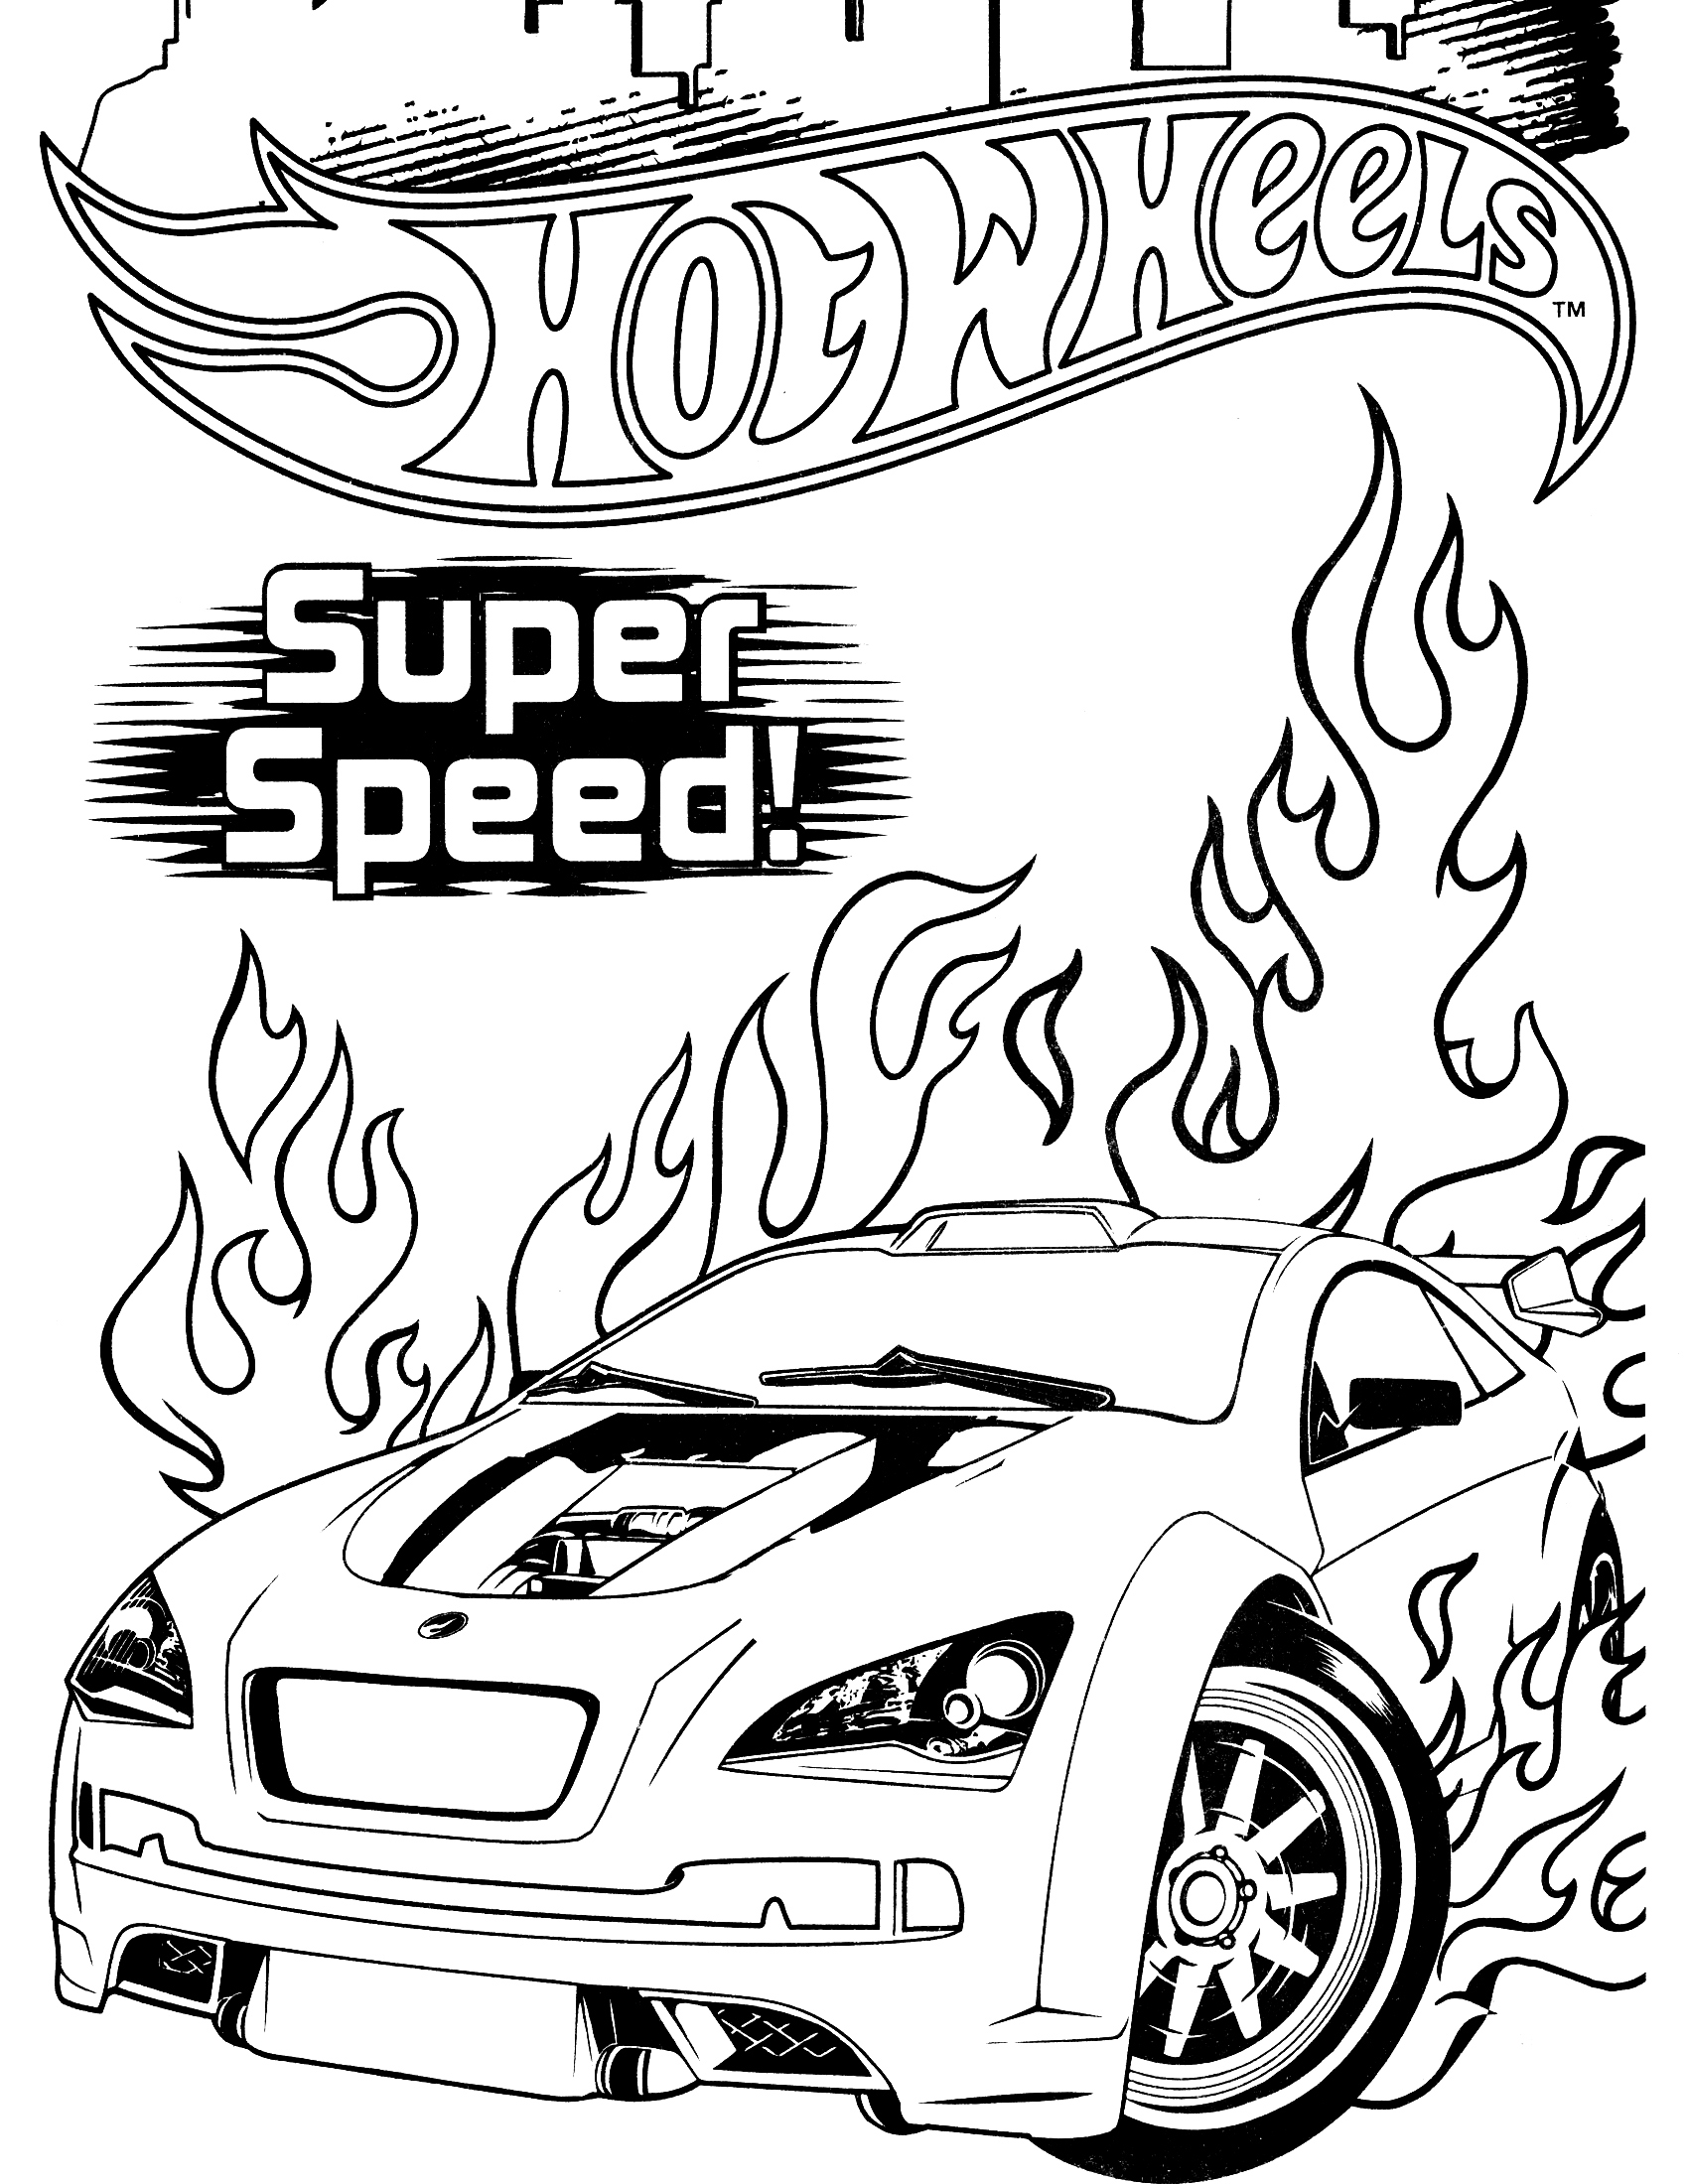 Super Speed Hot Wheels Racing Car Coloring Pages Picolour